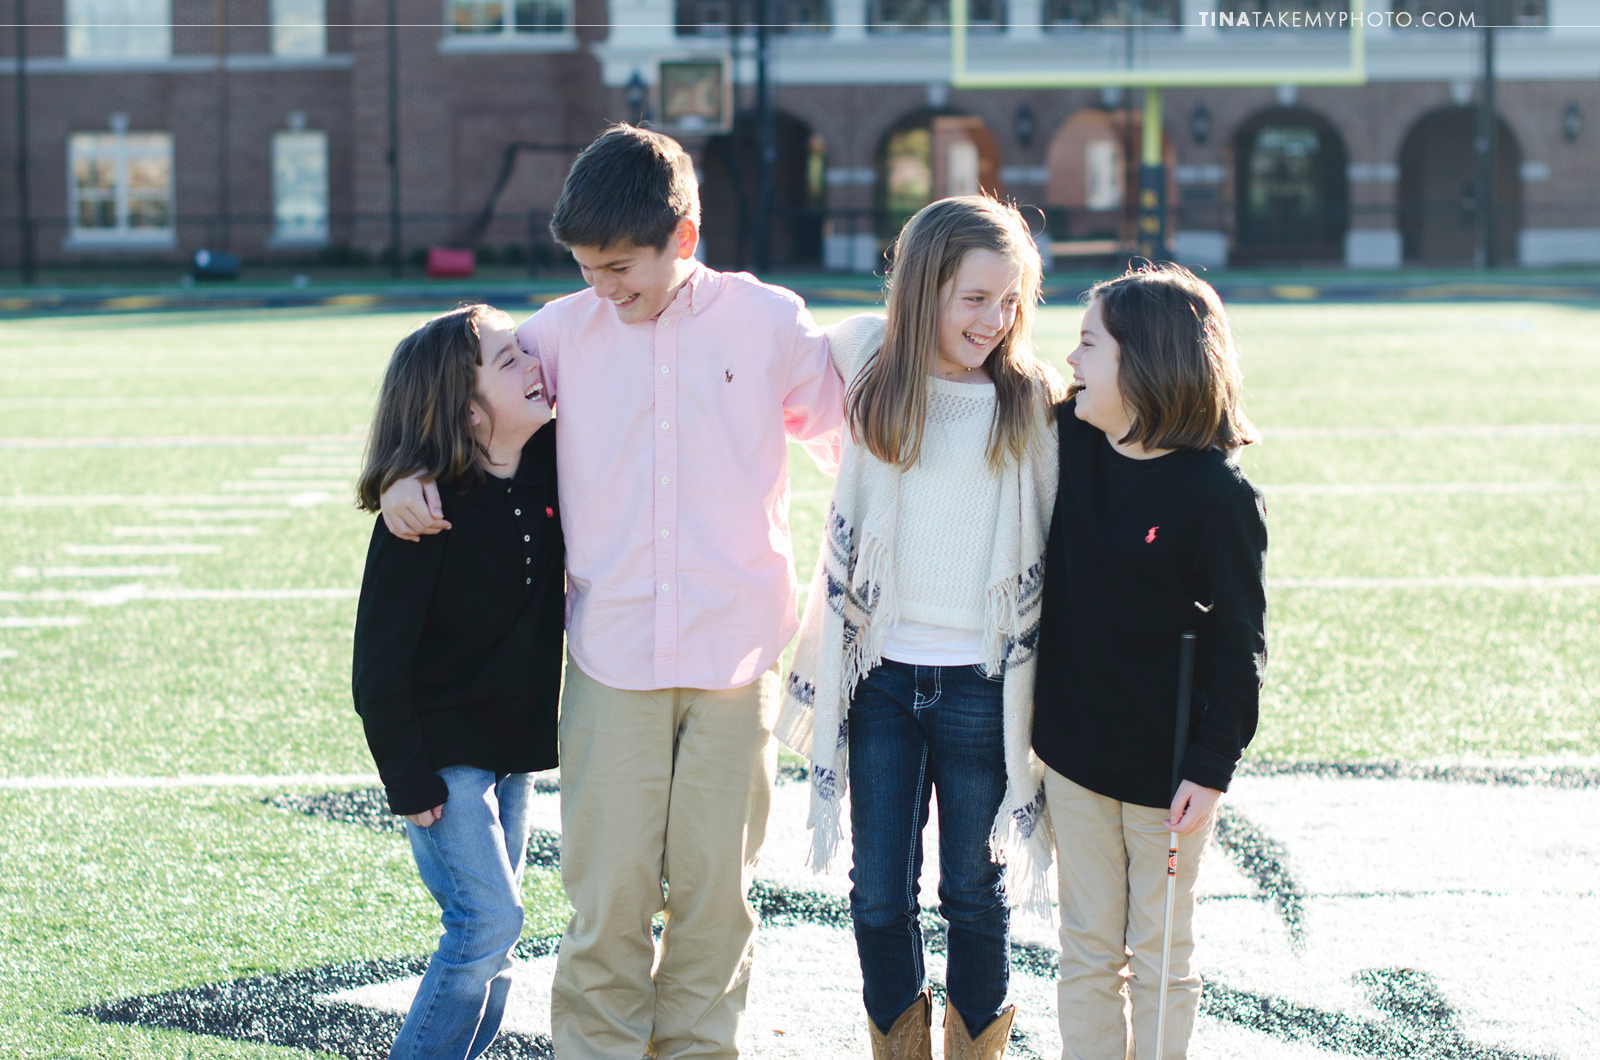 VA-virginia-family-photographer-kids-children-siblings-sunny-ashland-randolph-macon-field-laughing-03